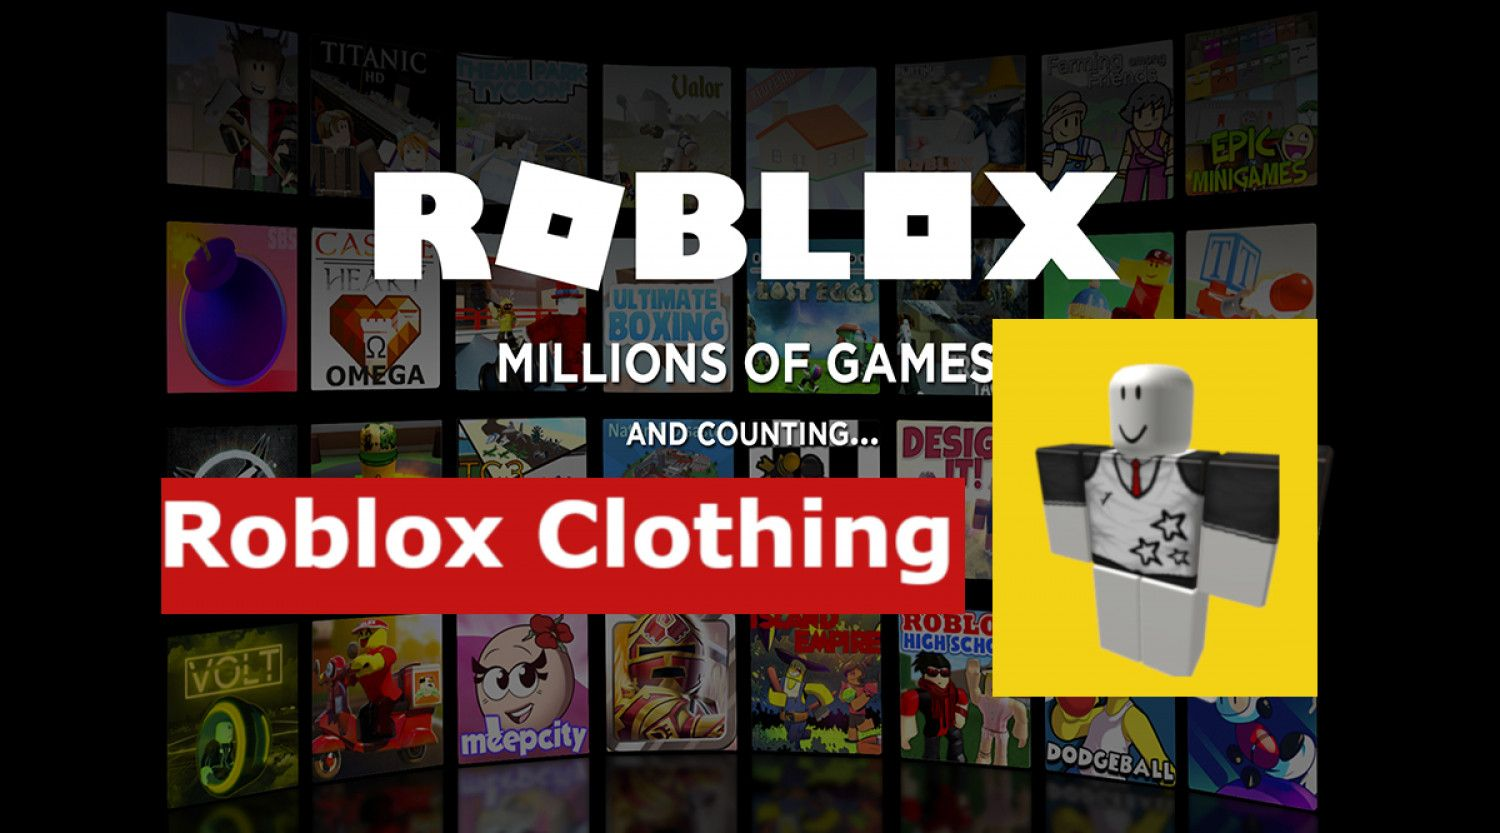 How To Make A Front Page Game On Roblox - How To Design Best Clothes For Your Roblox Avatar